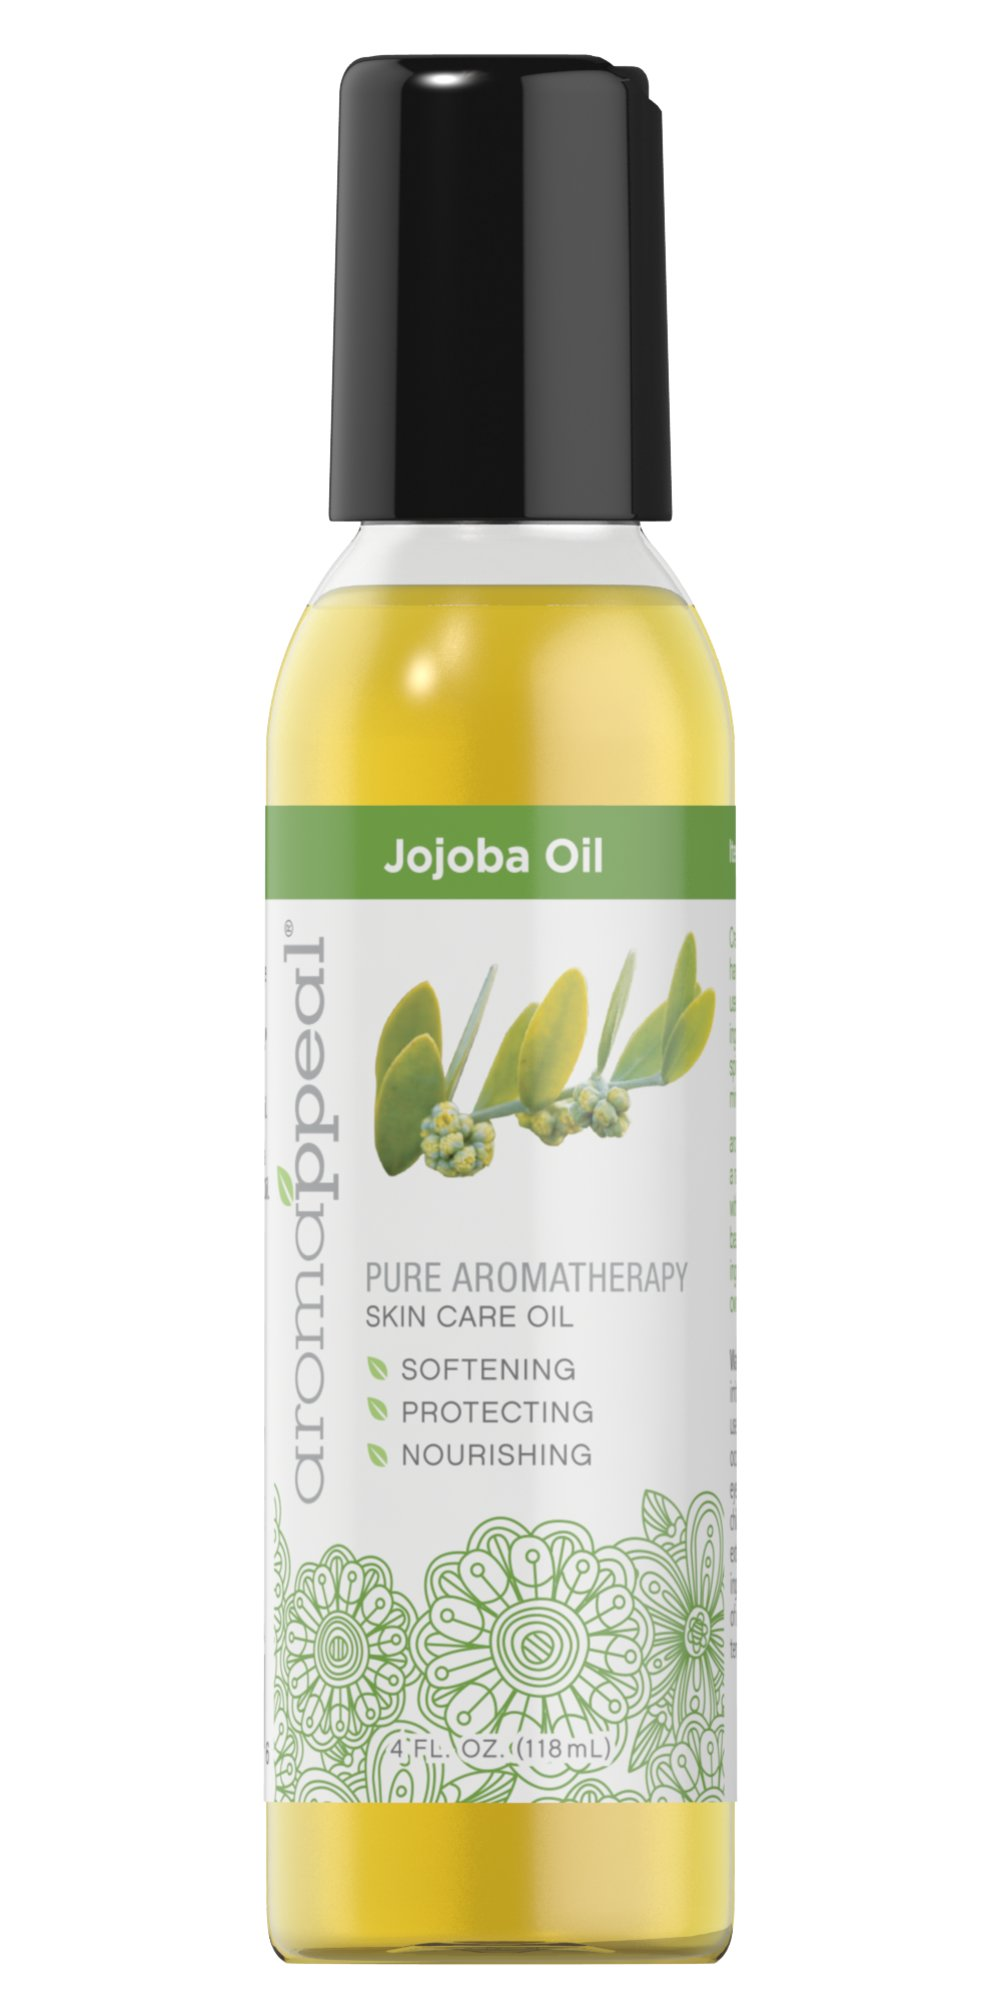 Jojoba Oil <p>Created to bring you harmony, Aromappeal™ uses the most balanced ingredients to lift your spirits and soothe your mind.</p><p>Aromappeal™ Jojoba Oil is a natural vegetable oil with a neutral aroma. This base makes an ideal ingredient to create your own aroma recipe.</p> 4 oz Oil  $19.99